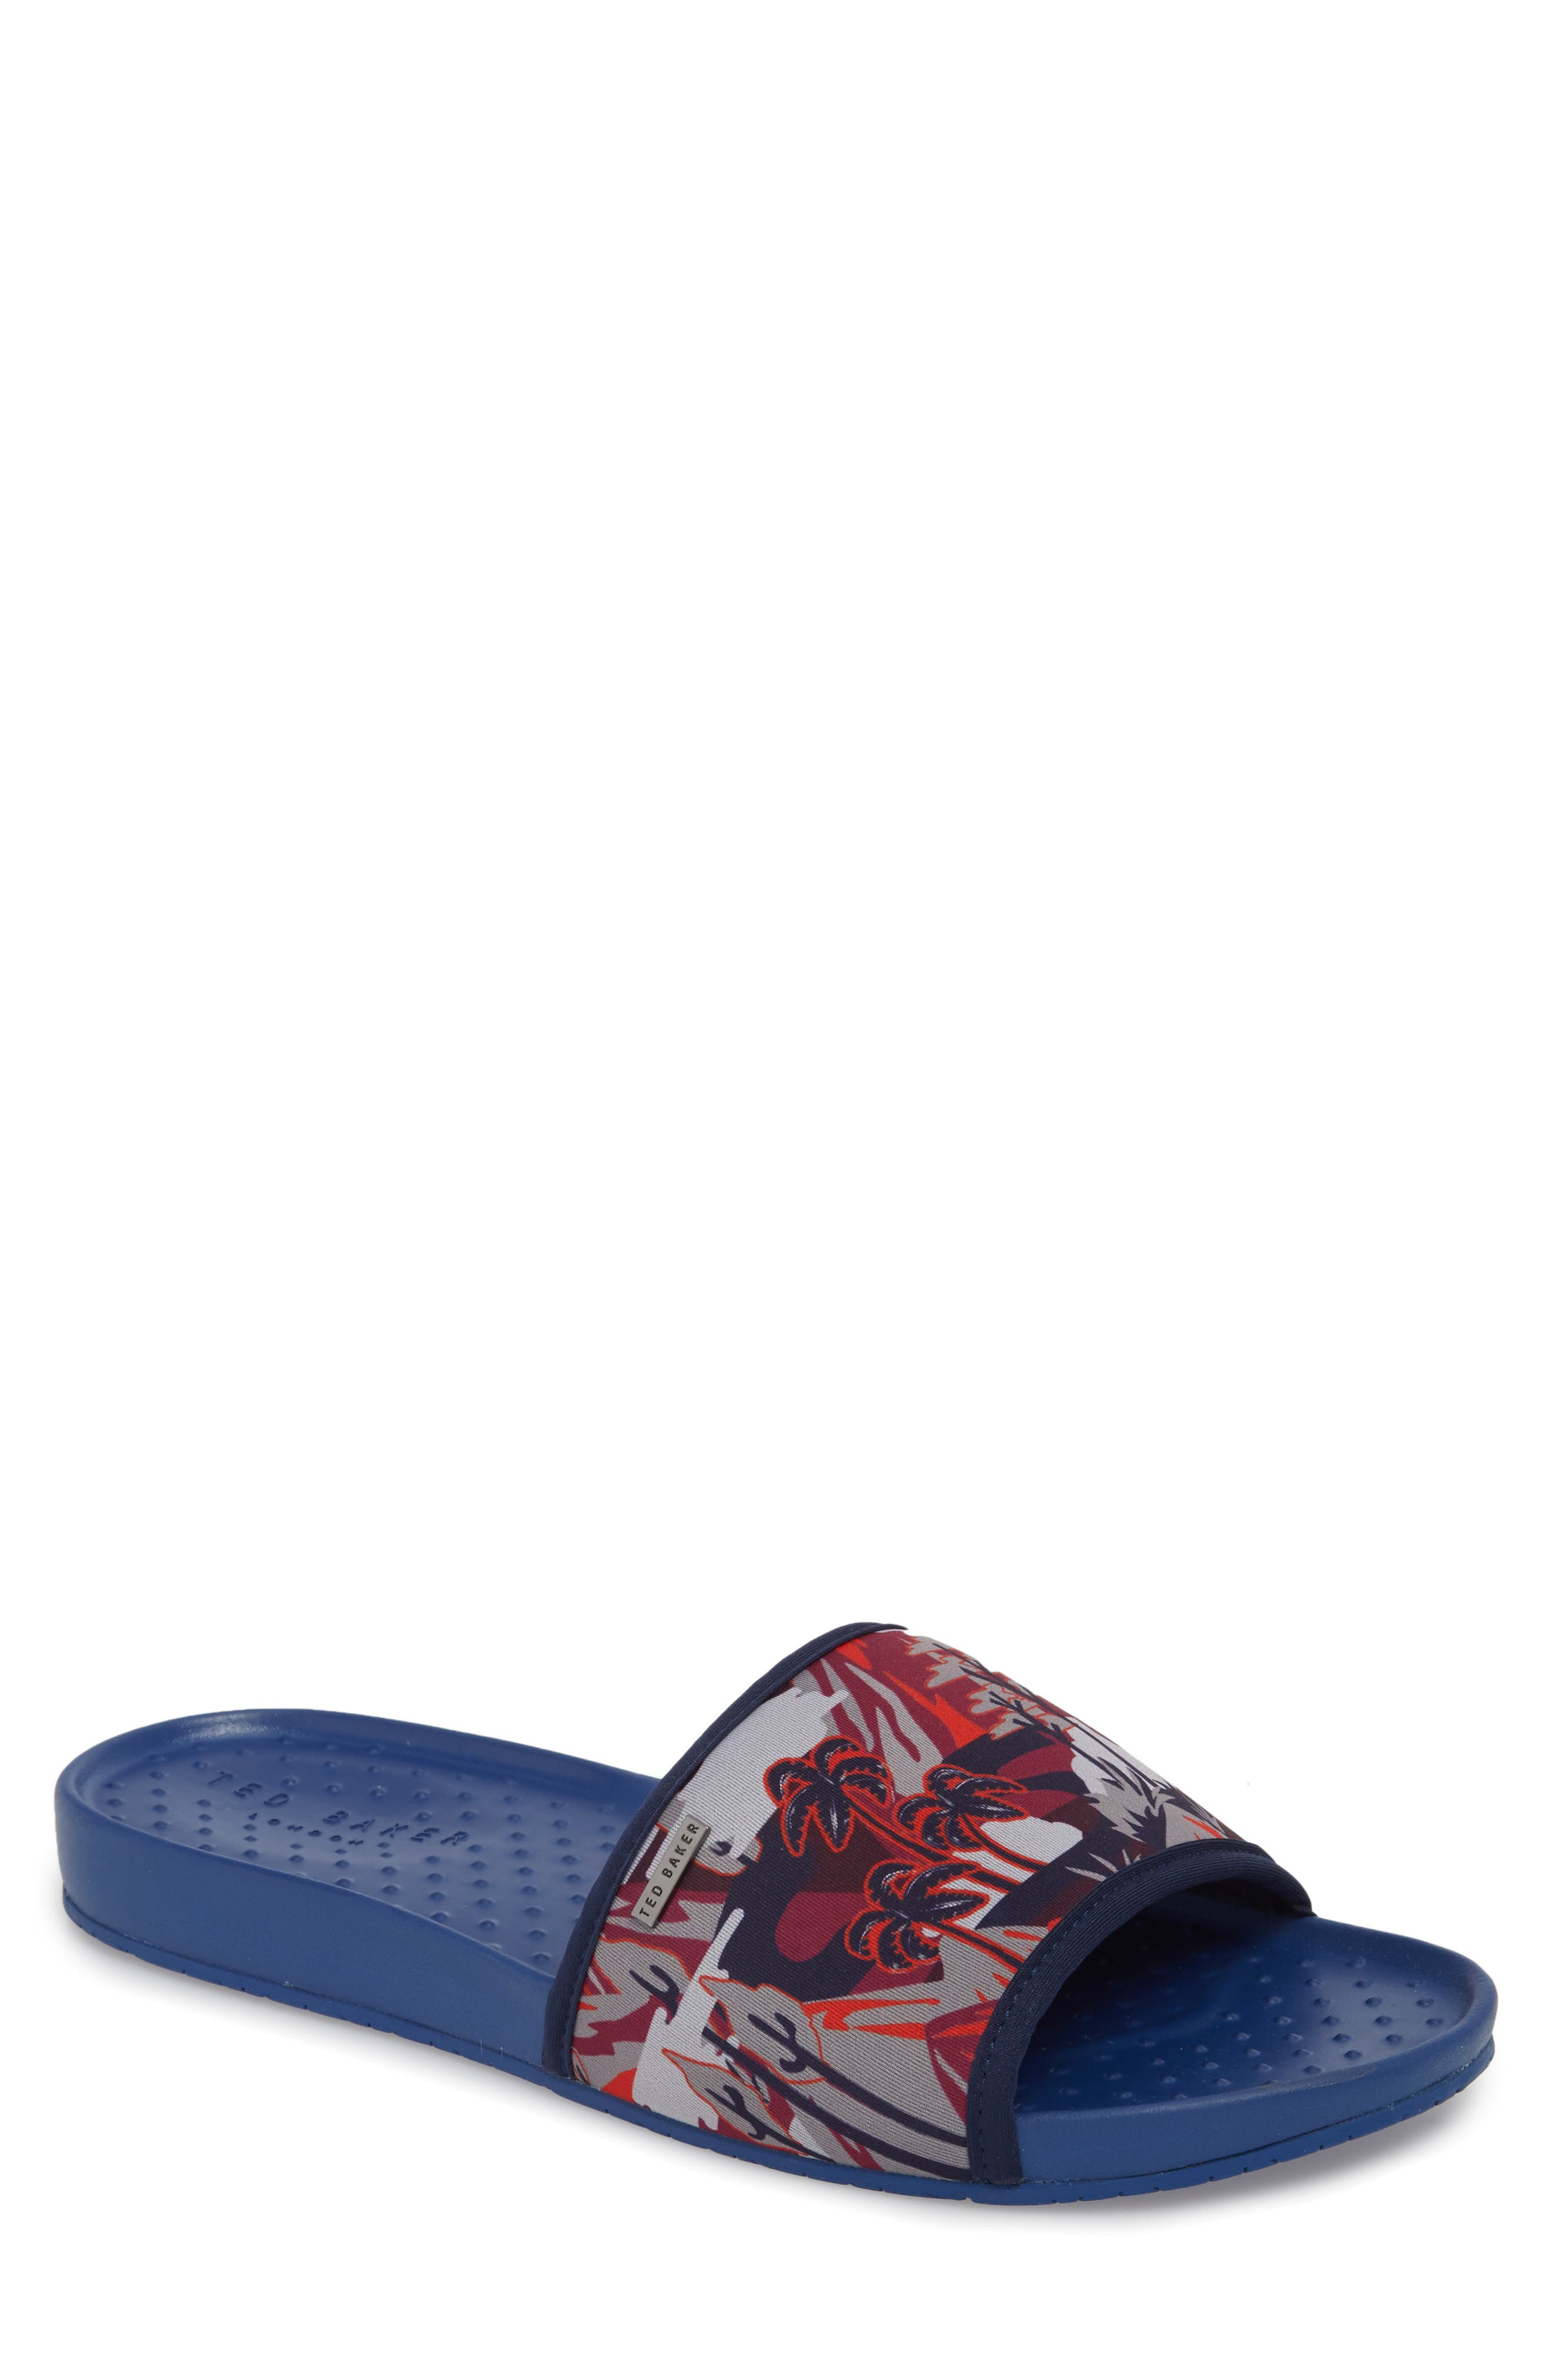 Ted Baker London Sauldi 2 Slide Sandal Men